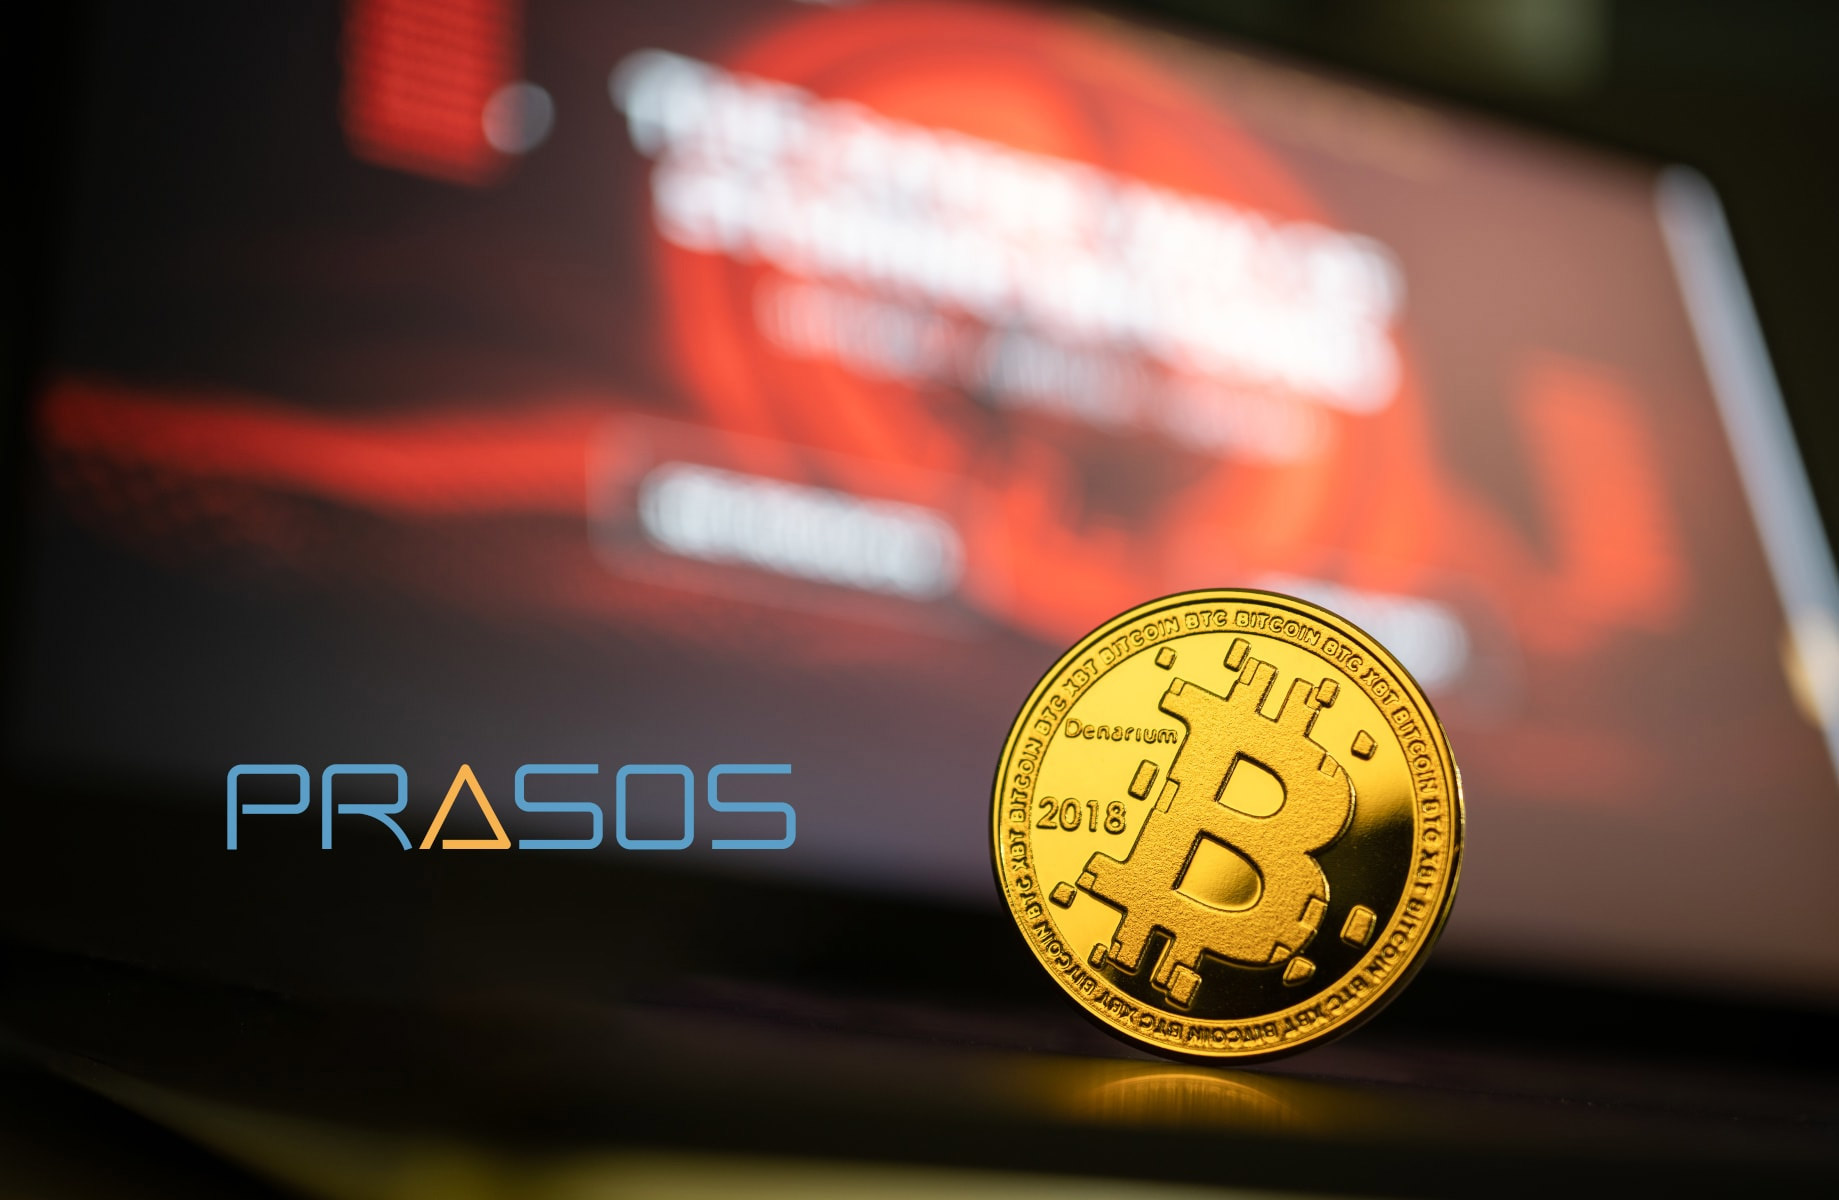 Institution to consider with cryptocurrency